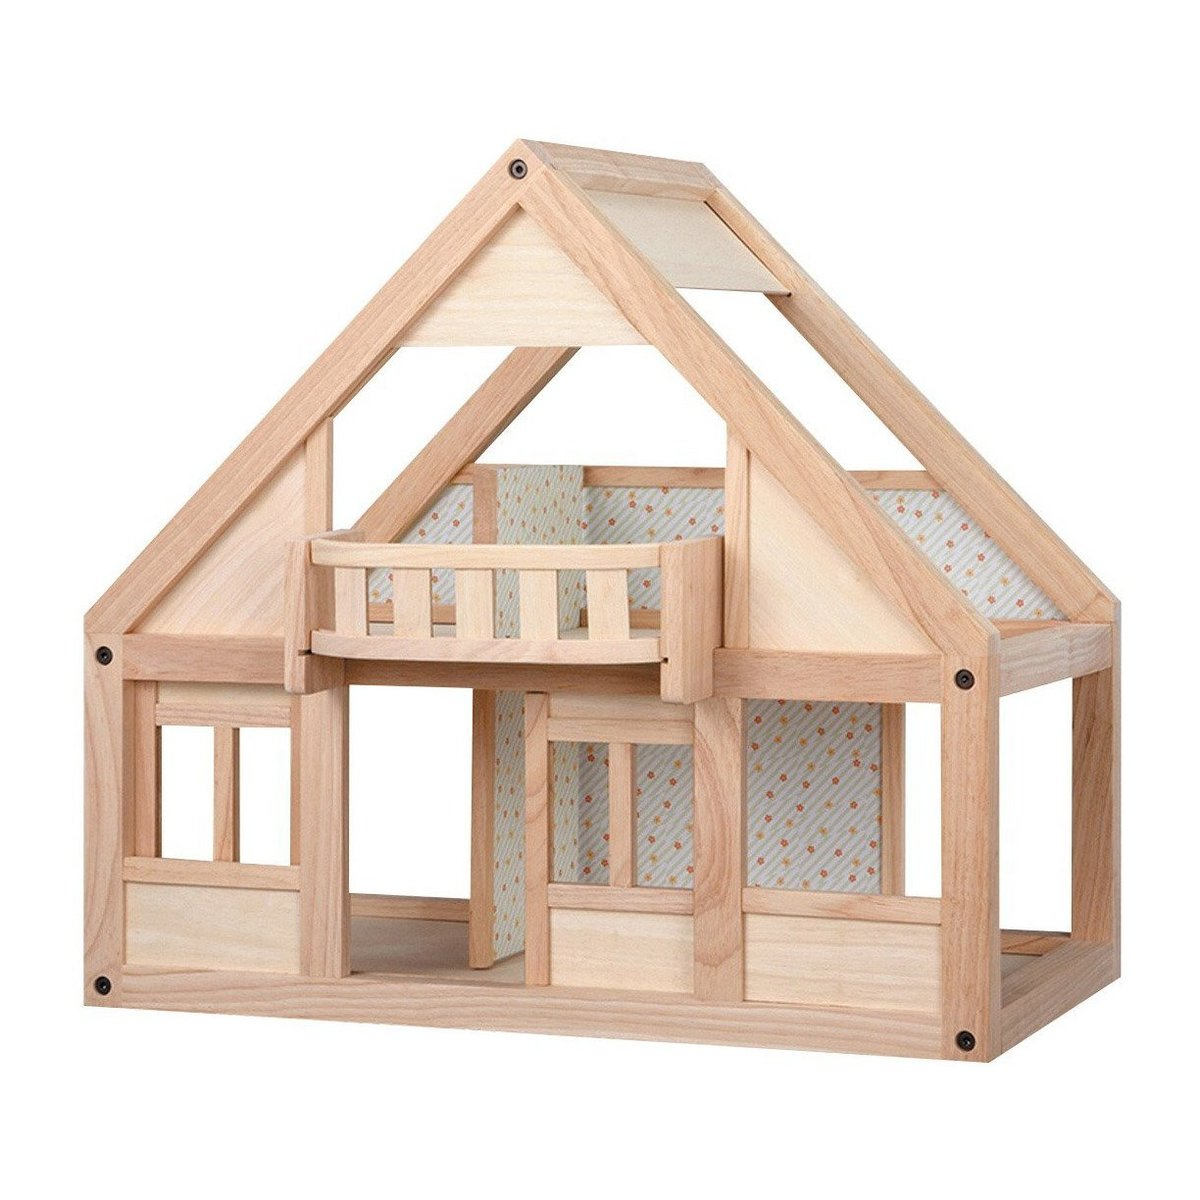 My First Dollhouse | Wooden Dollhouse